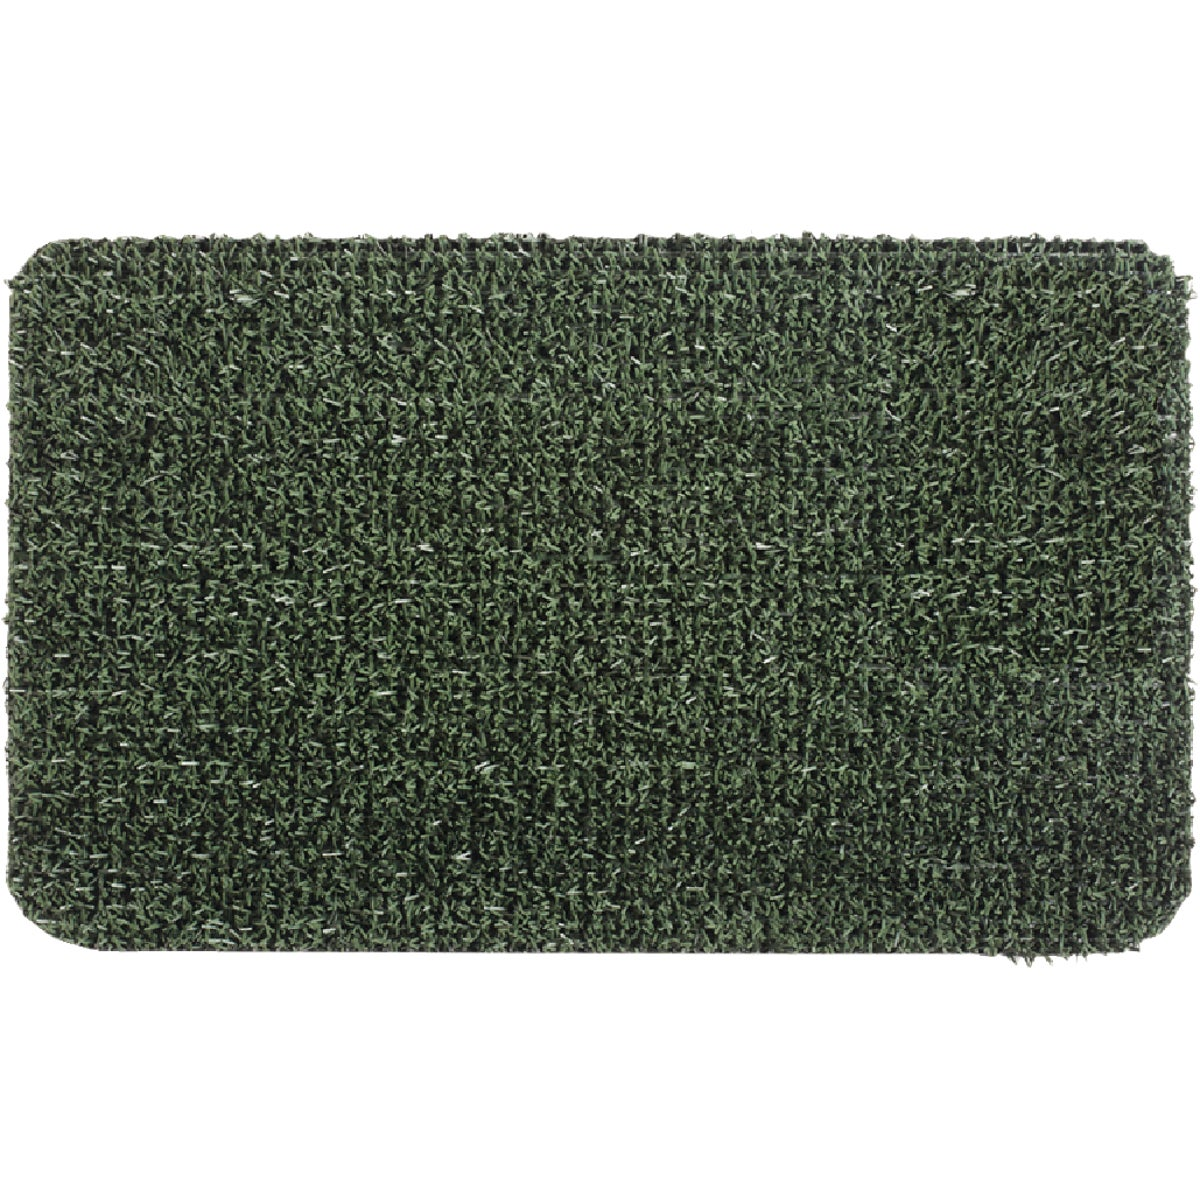 24X35.5 GREEN DOOR MAT - 10370308 by Grassworx